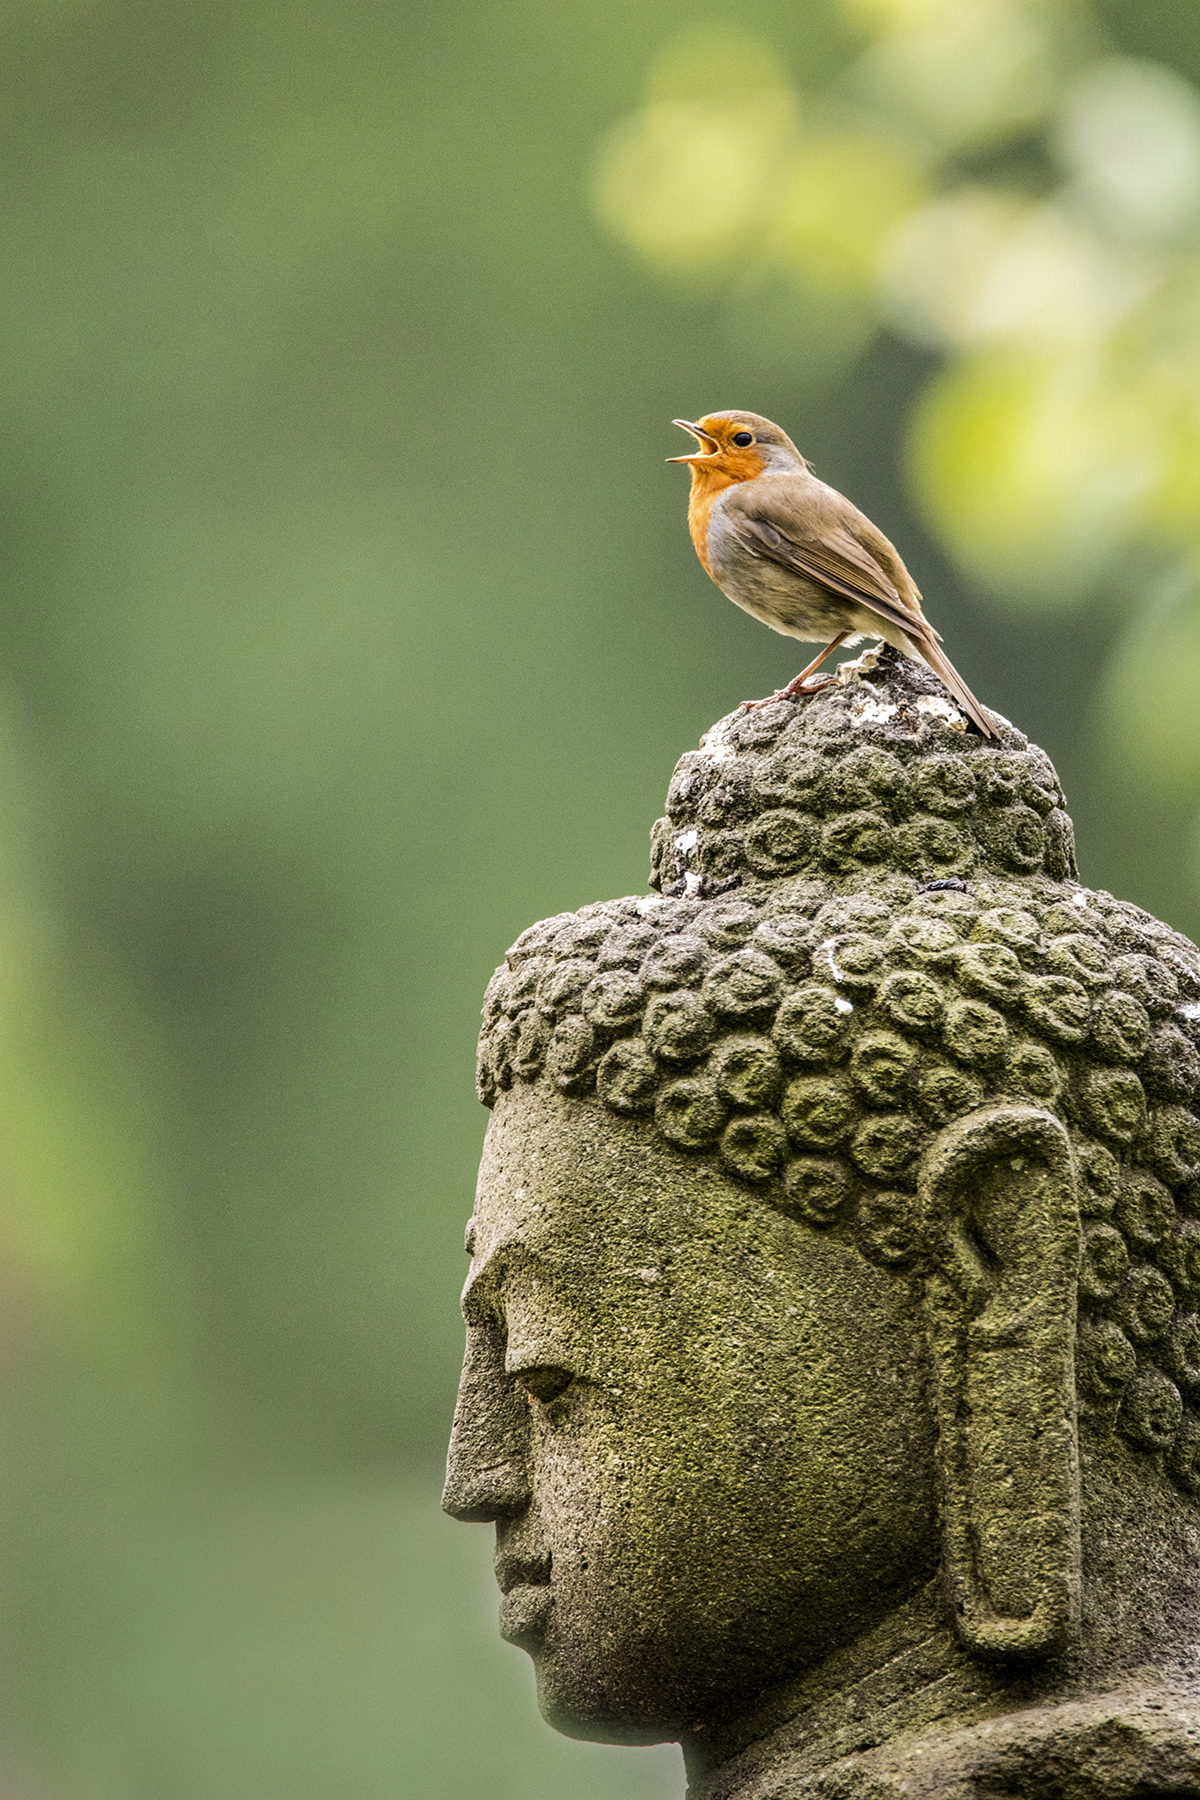 A bird sitting on top of a statue.